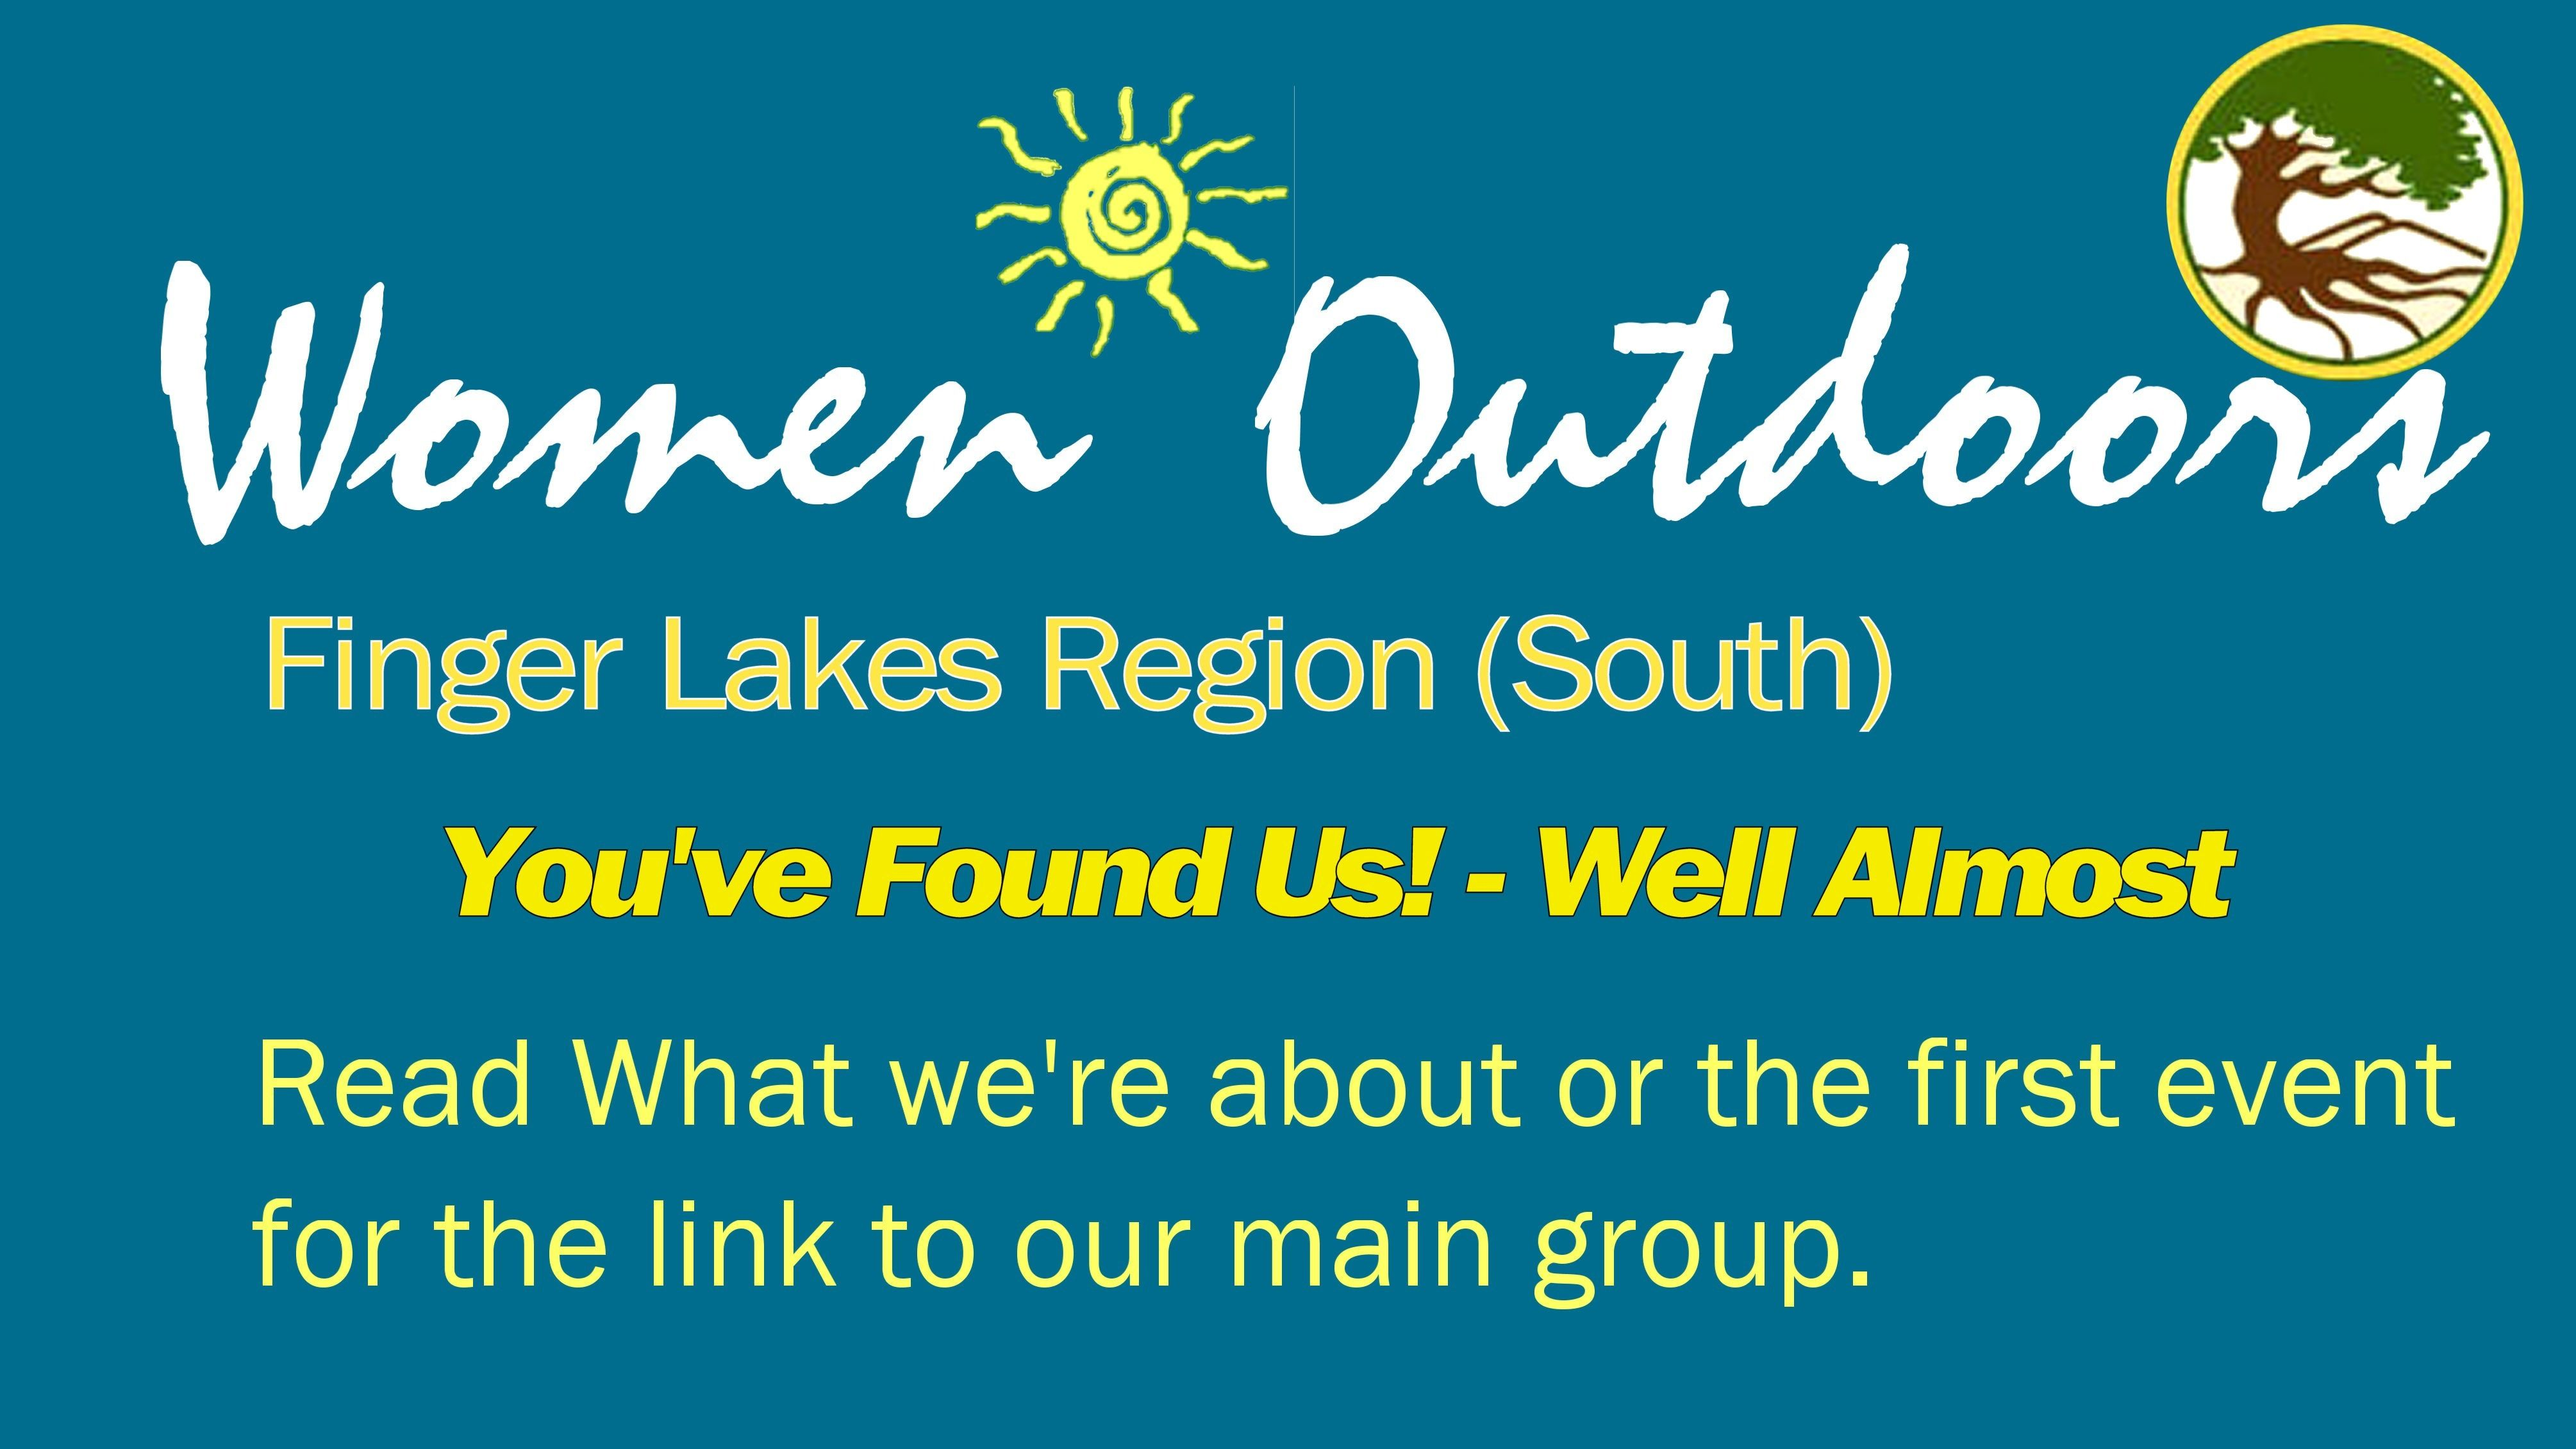 Women Outdoors - Finger Lakes (South)